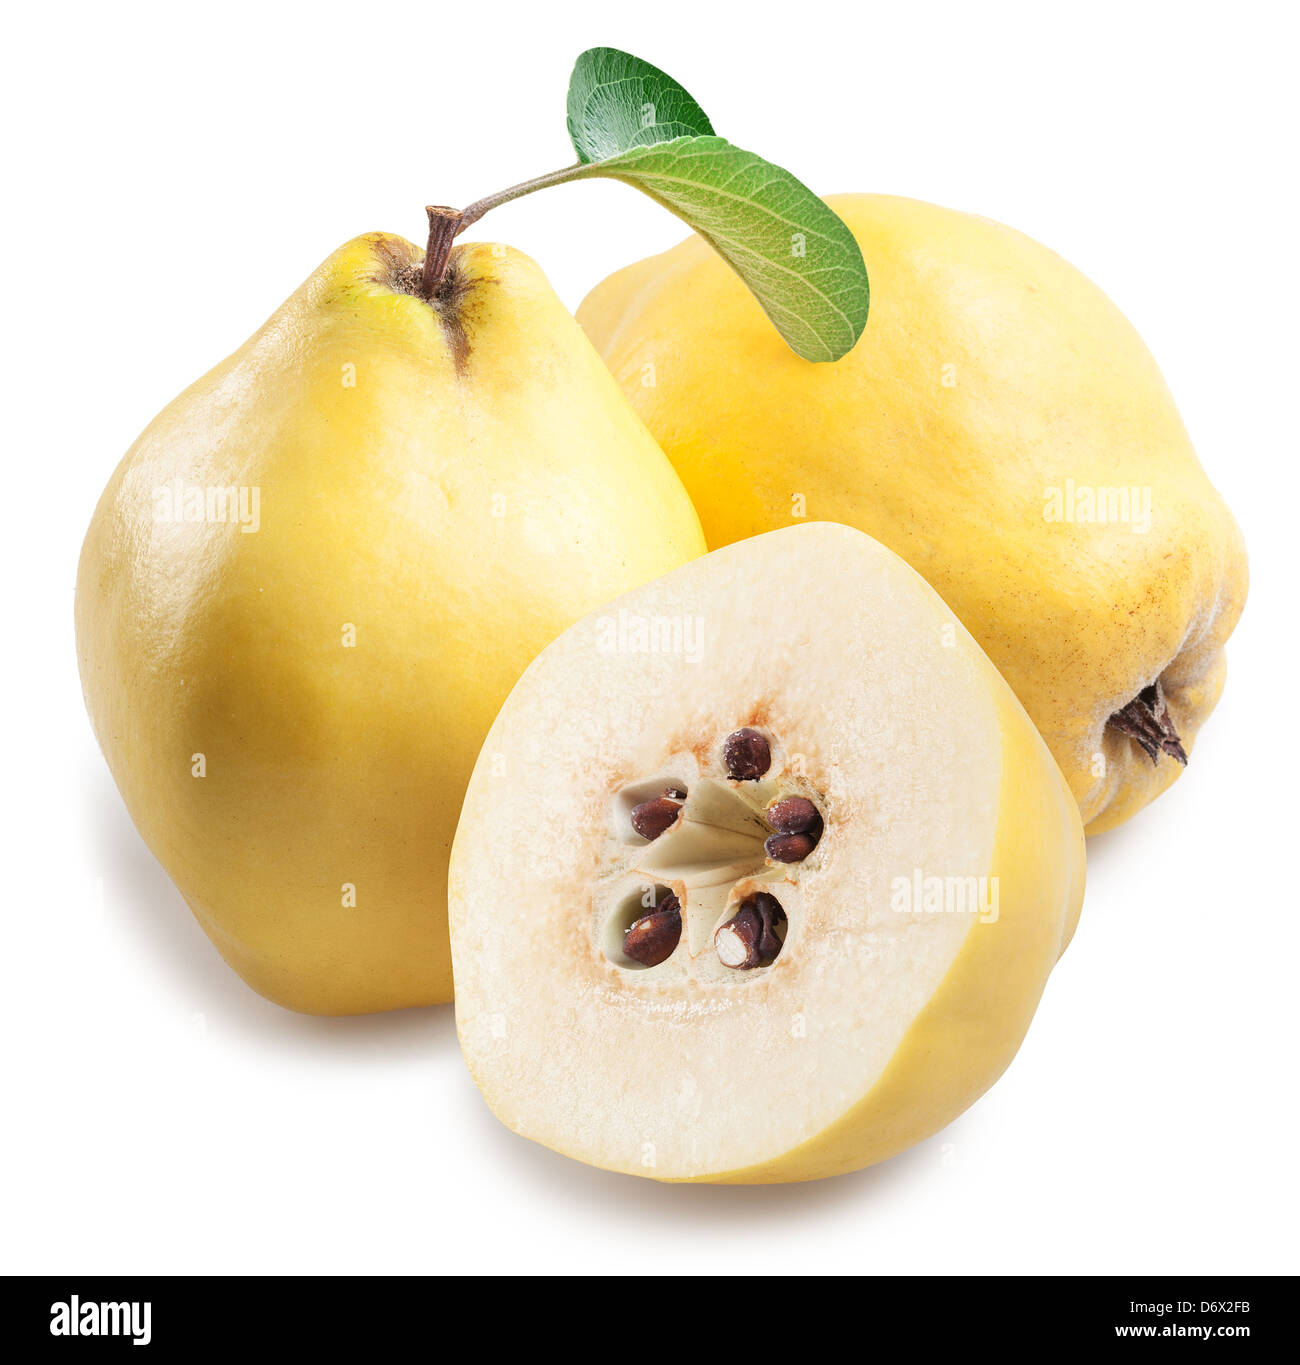 Quince with slices on a white background. - Stock Image